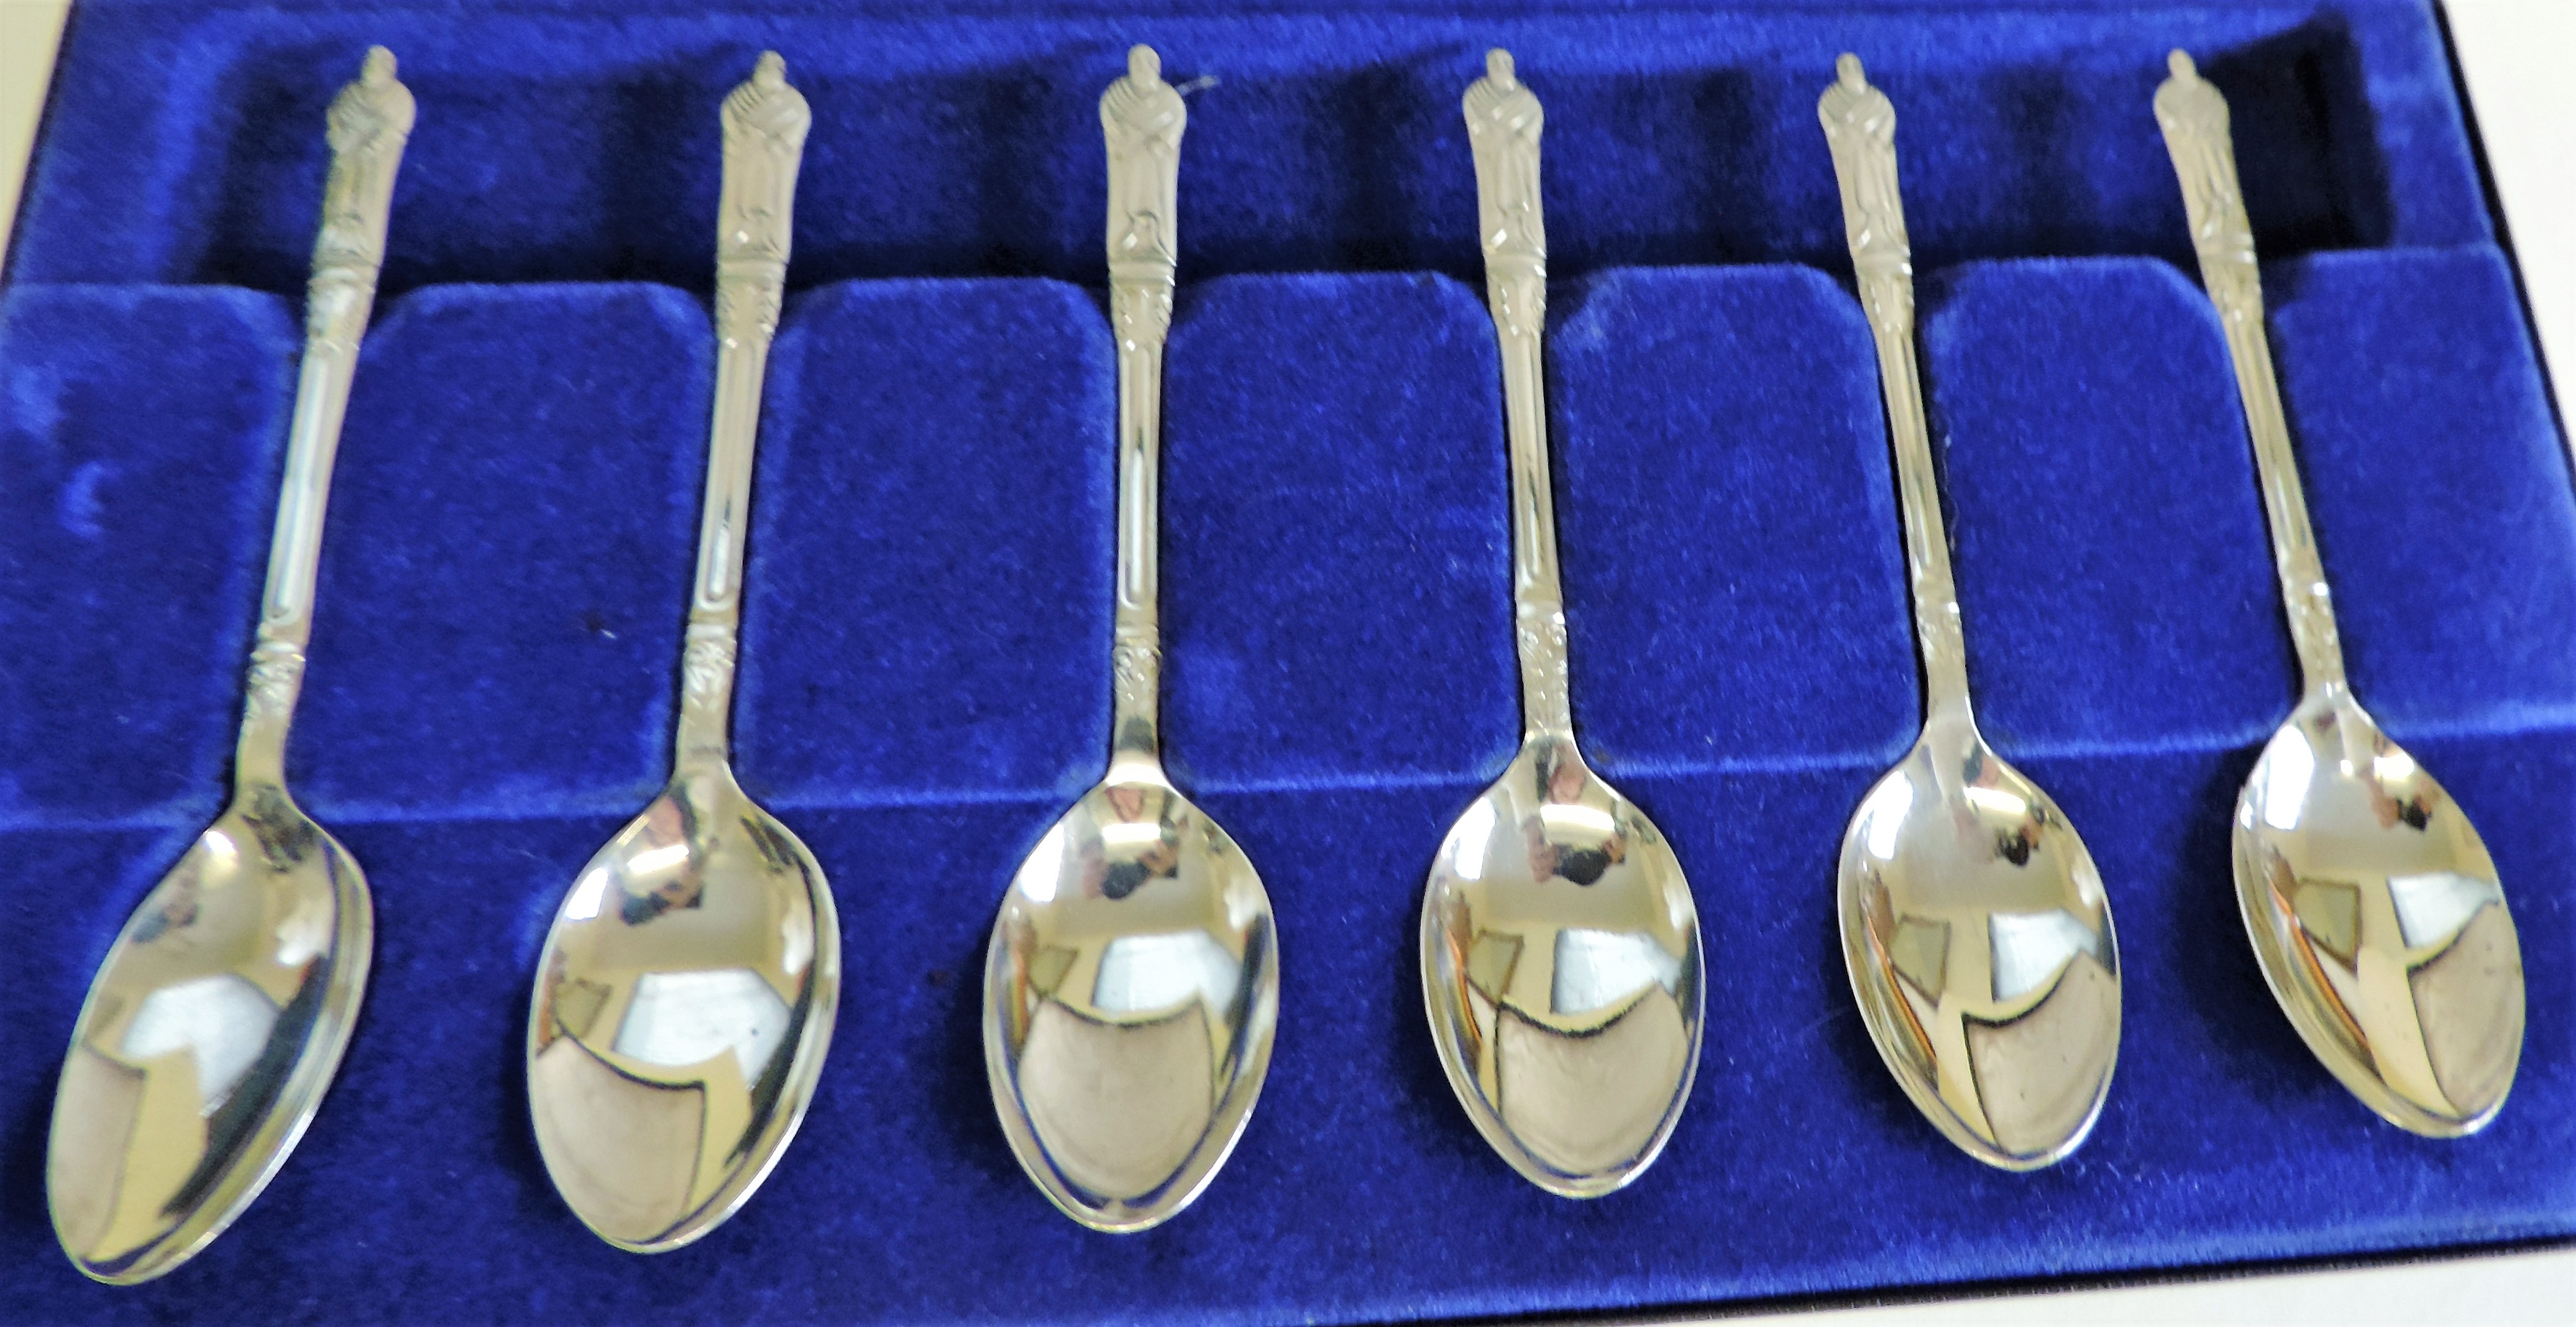 Cased Set 6 Silver Plated Apostle Tea Spoons - Image 3 of 3